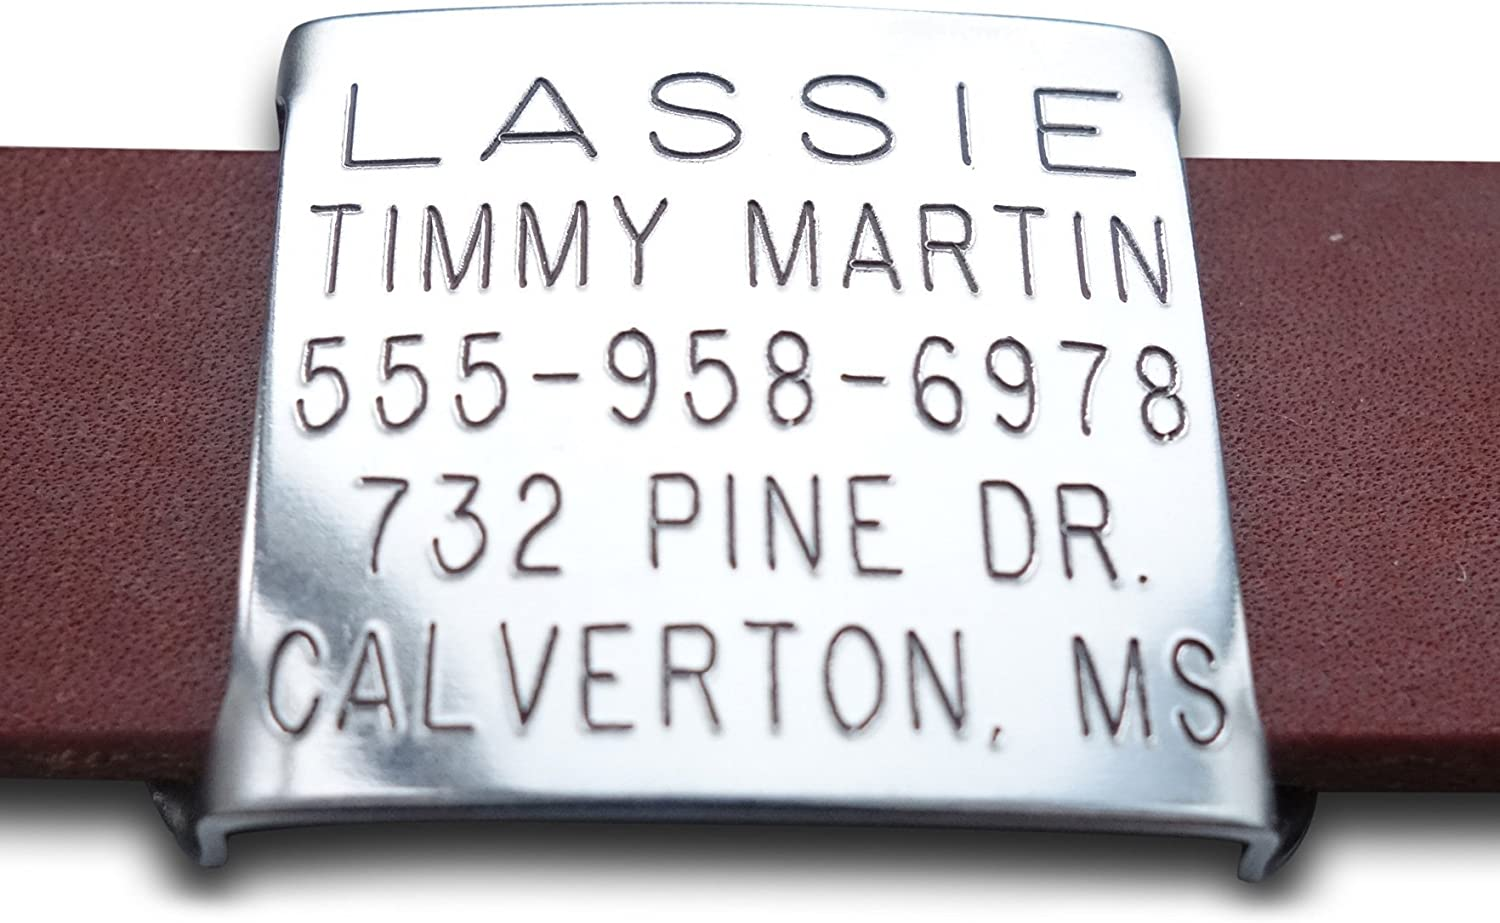 Leashboss Slide On Pet ID Direct sale of manufacturer Tag Louisville-Jefferson County Mall Nylon for Leather and Double Thick